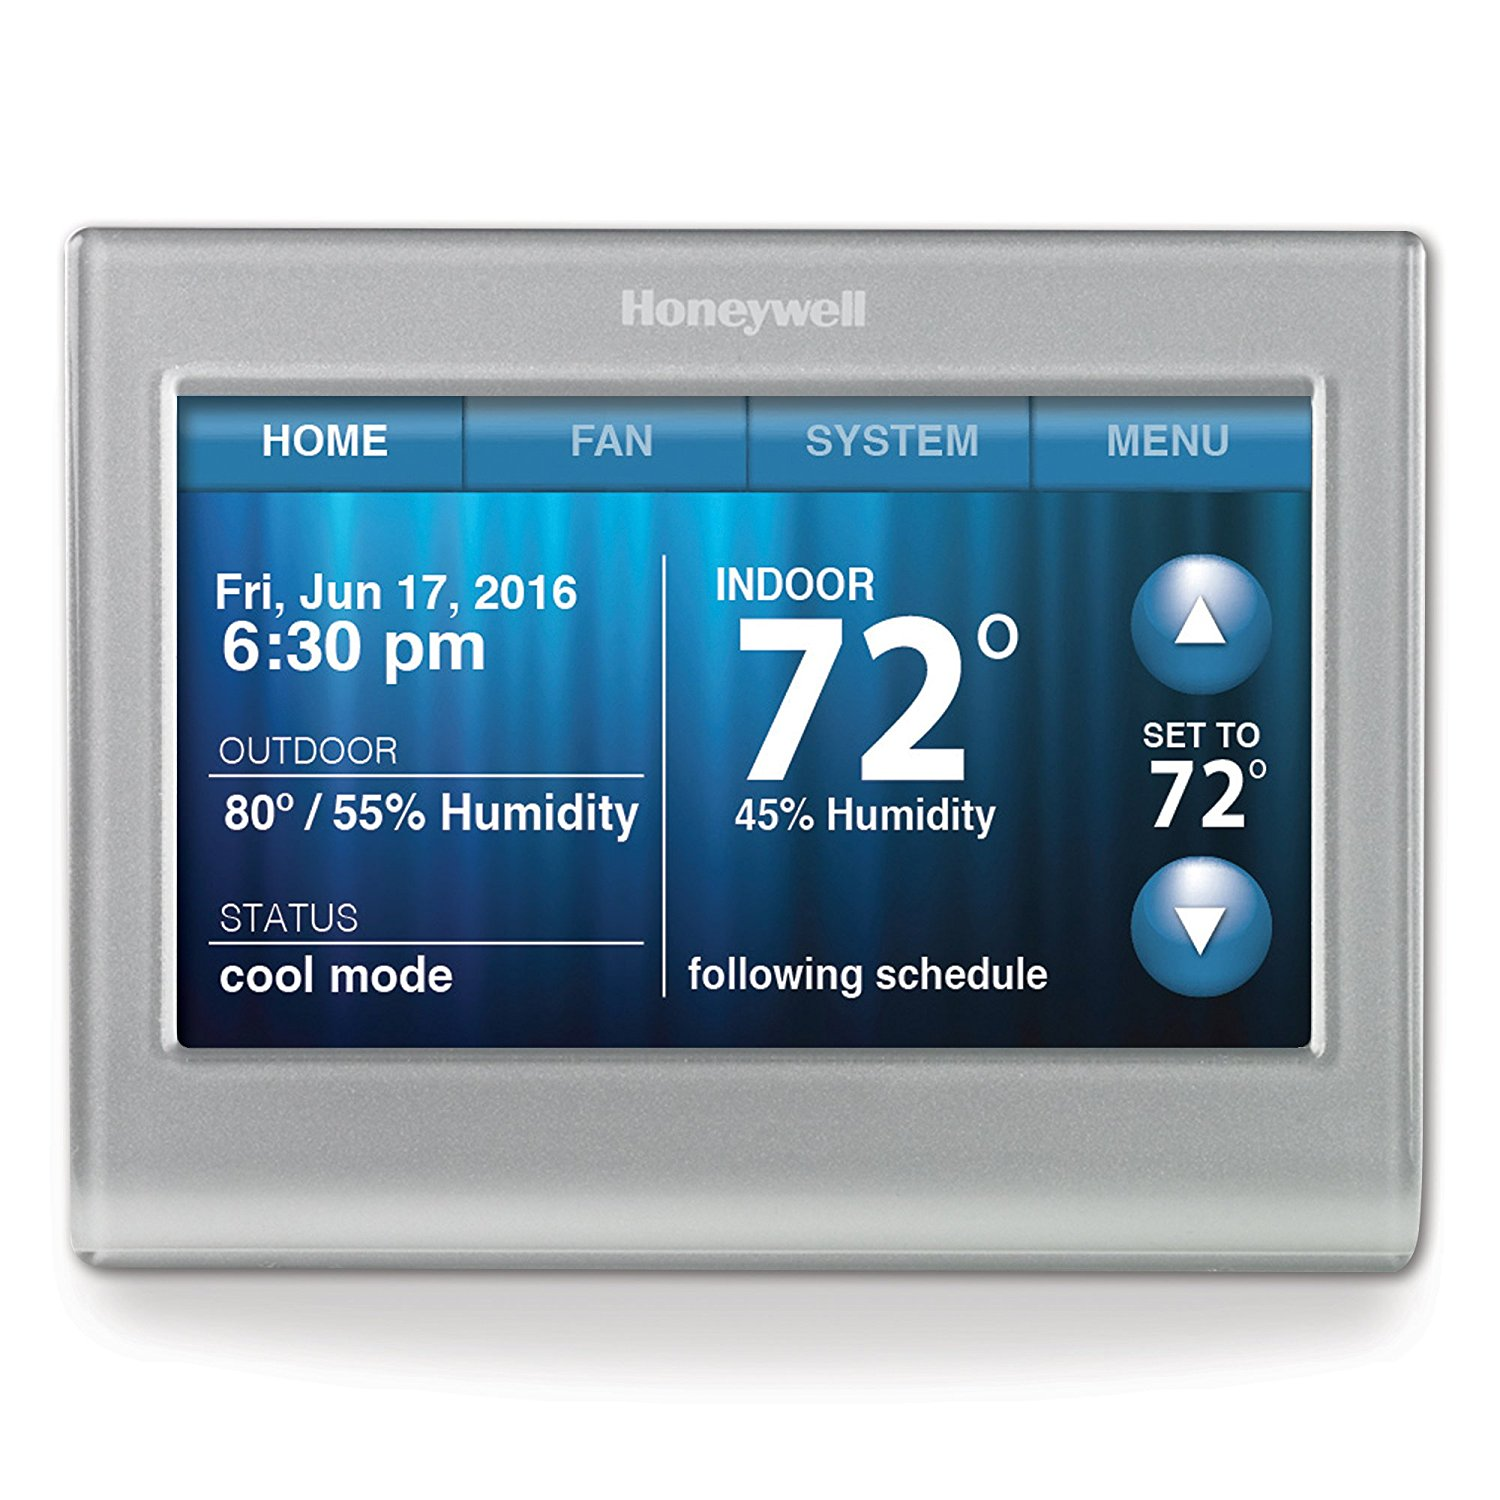 Furnace Thermostat - Choose the right Thermostat for your Furnace on honeywell wireless thermostat wiring, honeywell iaq thermostat wiring, honeywell programmable thermostat wiring, honeywell furnace blower motor, honeywell electric thermostat wiring, honeywell line voltage thermostat wiring, honeywell baseboard thermostat wiring, honeywell furnace transformer, honeywell thermostat installation wiring, honeywell t87f thermostat wiring, honeywell ac thermostat wiring diagram for wires,